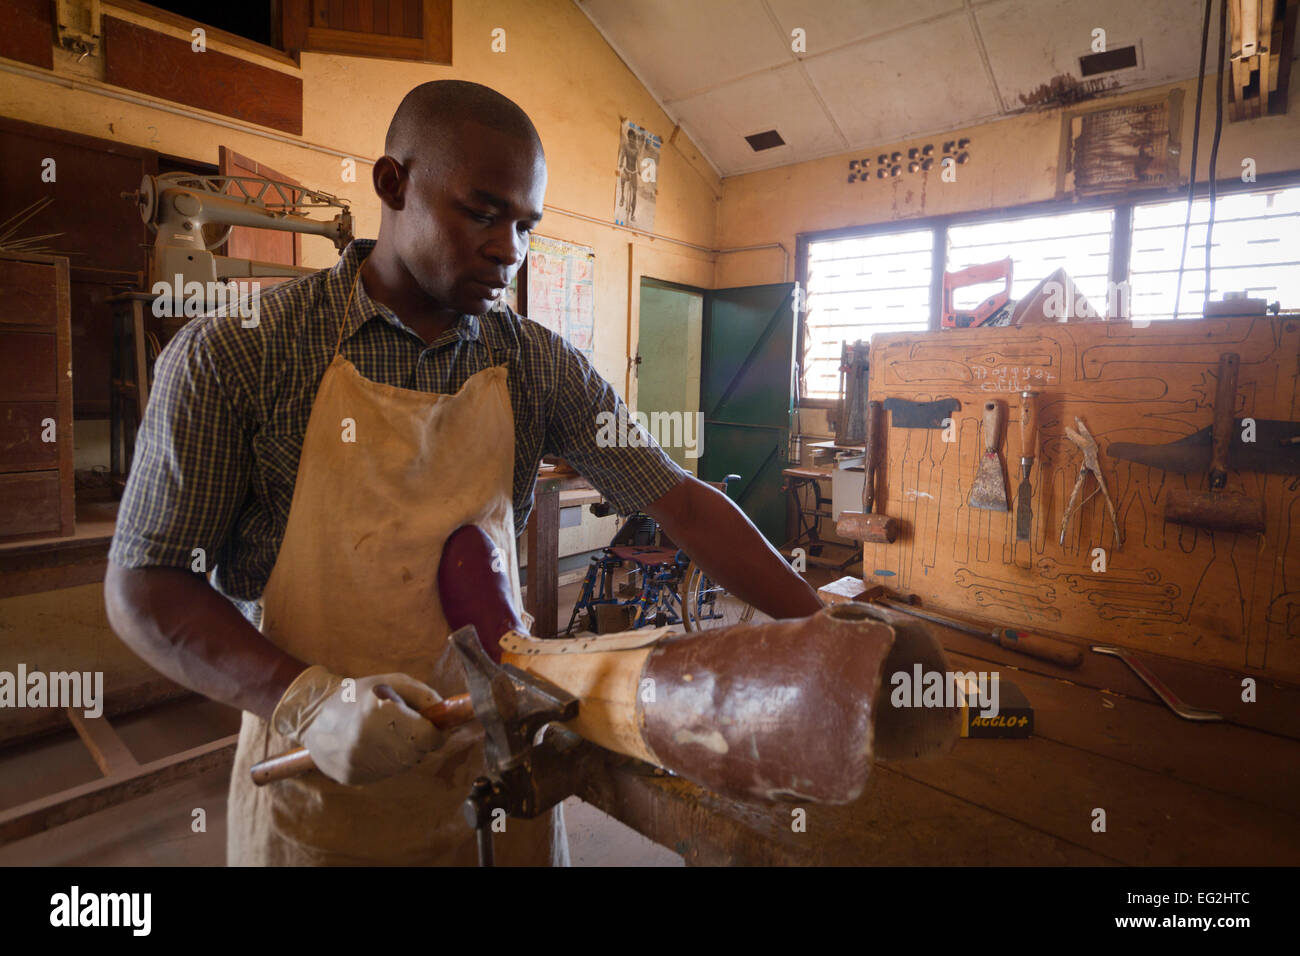 Manufactures prosthesis close to General hospital of Bangui ,Central African Republic ,Africa - Stock Image